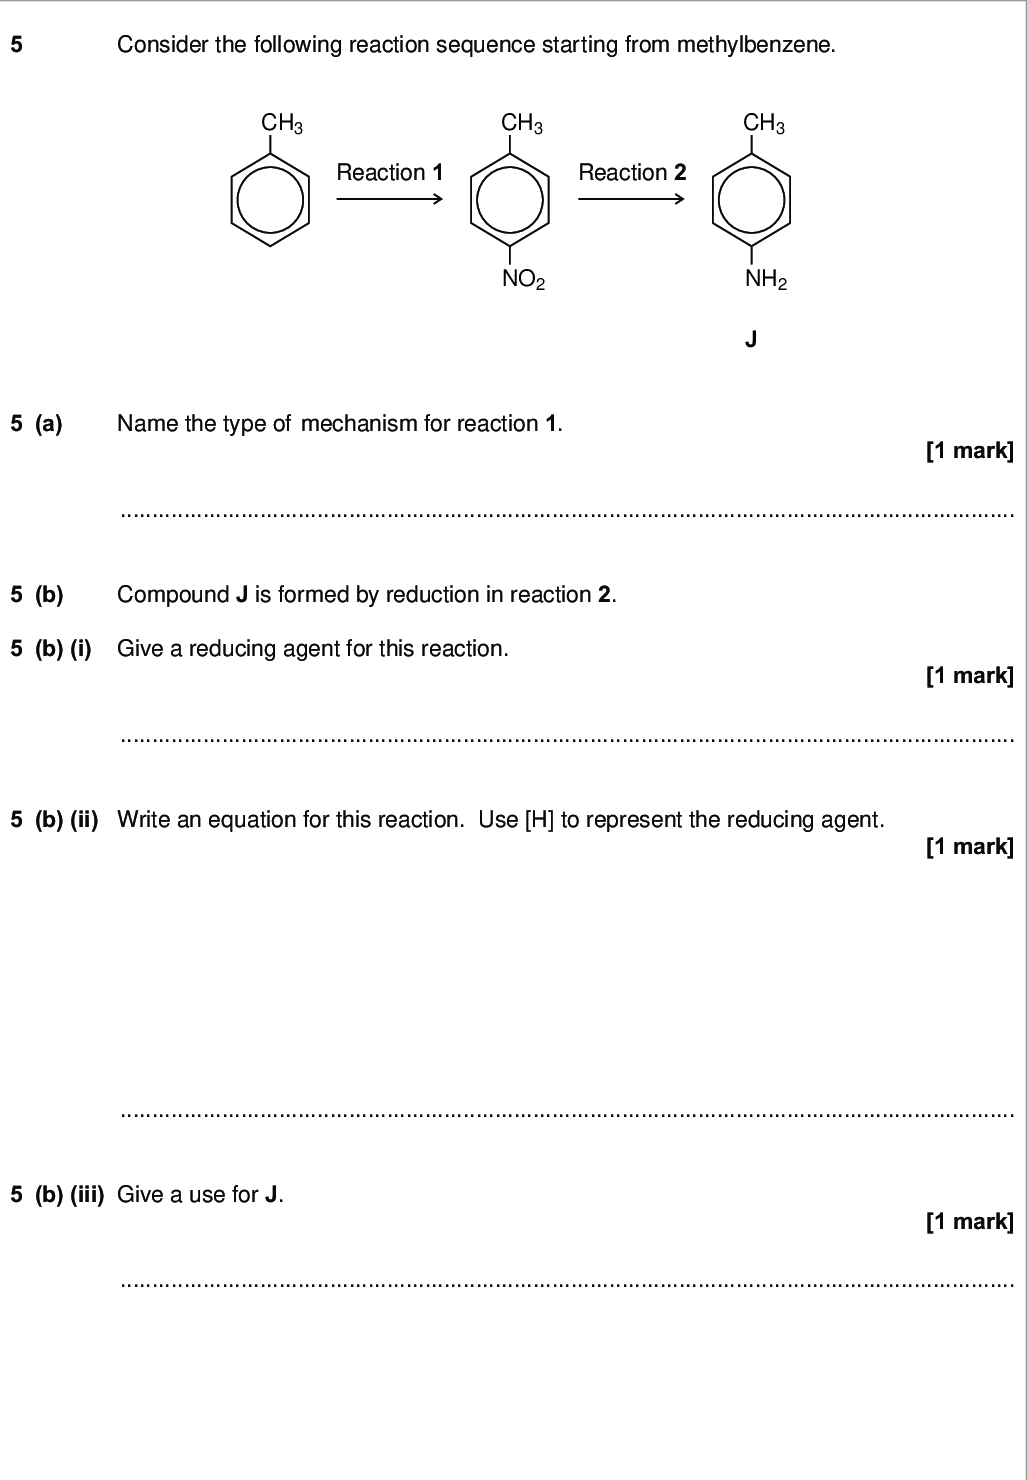 consider the following reaction sequence starting from methylbenzene do not write outside the box ch ch ch reaction reaction no nh a name the type of mechanism for reaction mark b compound j is formed by reduction in reaction b i give a reducing agent for this reaction mark b ii write an equation for this reaction use h to represent the reducing agent mark b iii give a use for j mark wmp jun chem do not write outside the box c outline a mechanism for the reaction of bromomethane with an excess of compound j you should represent j as rnh in the mechanism marks d compound k c h ch nh is a structural isomer of j explain why j is a weaker base than k marks turn over wmp jun chem